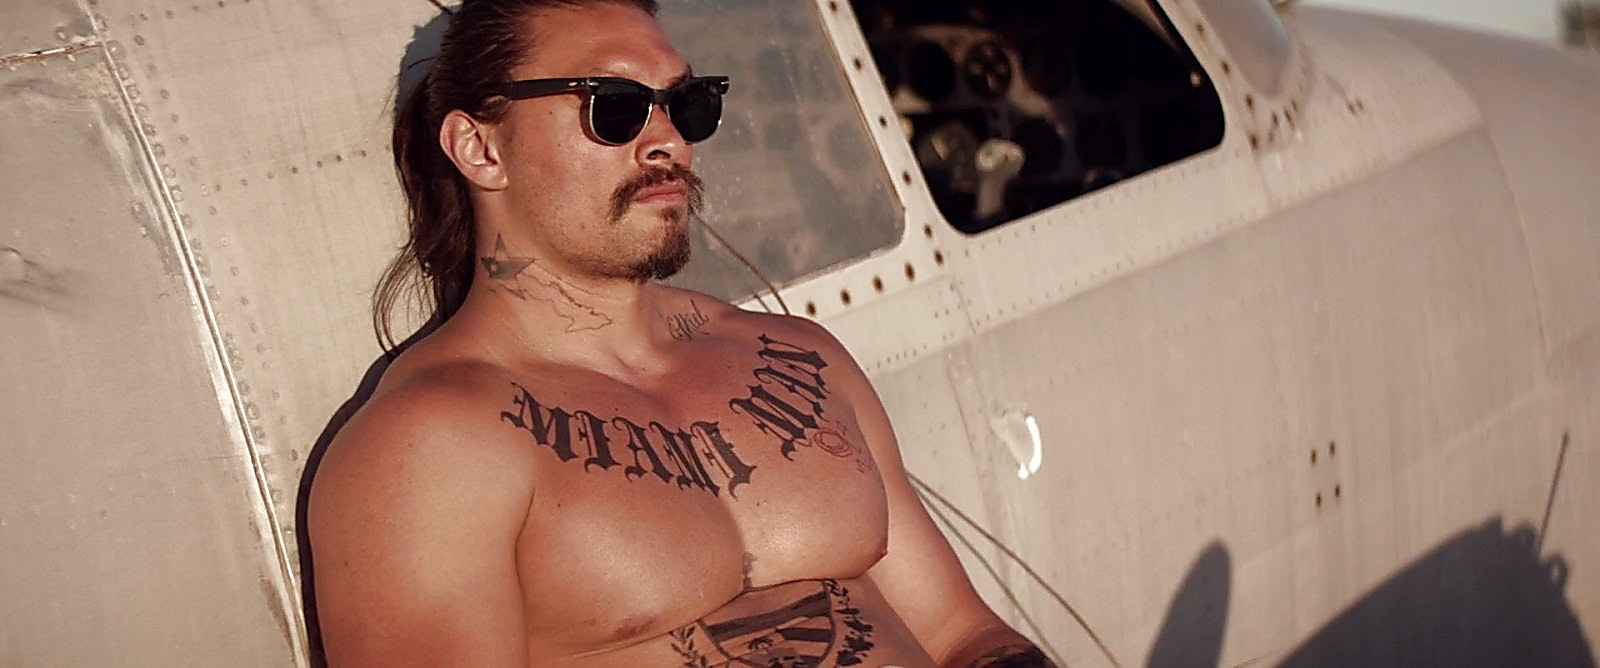 Jason Momoa The Bad Batch 2017 06 23 7jpg